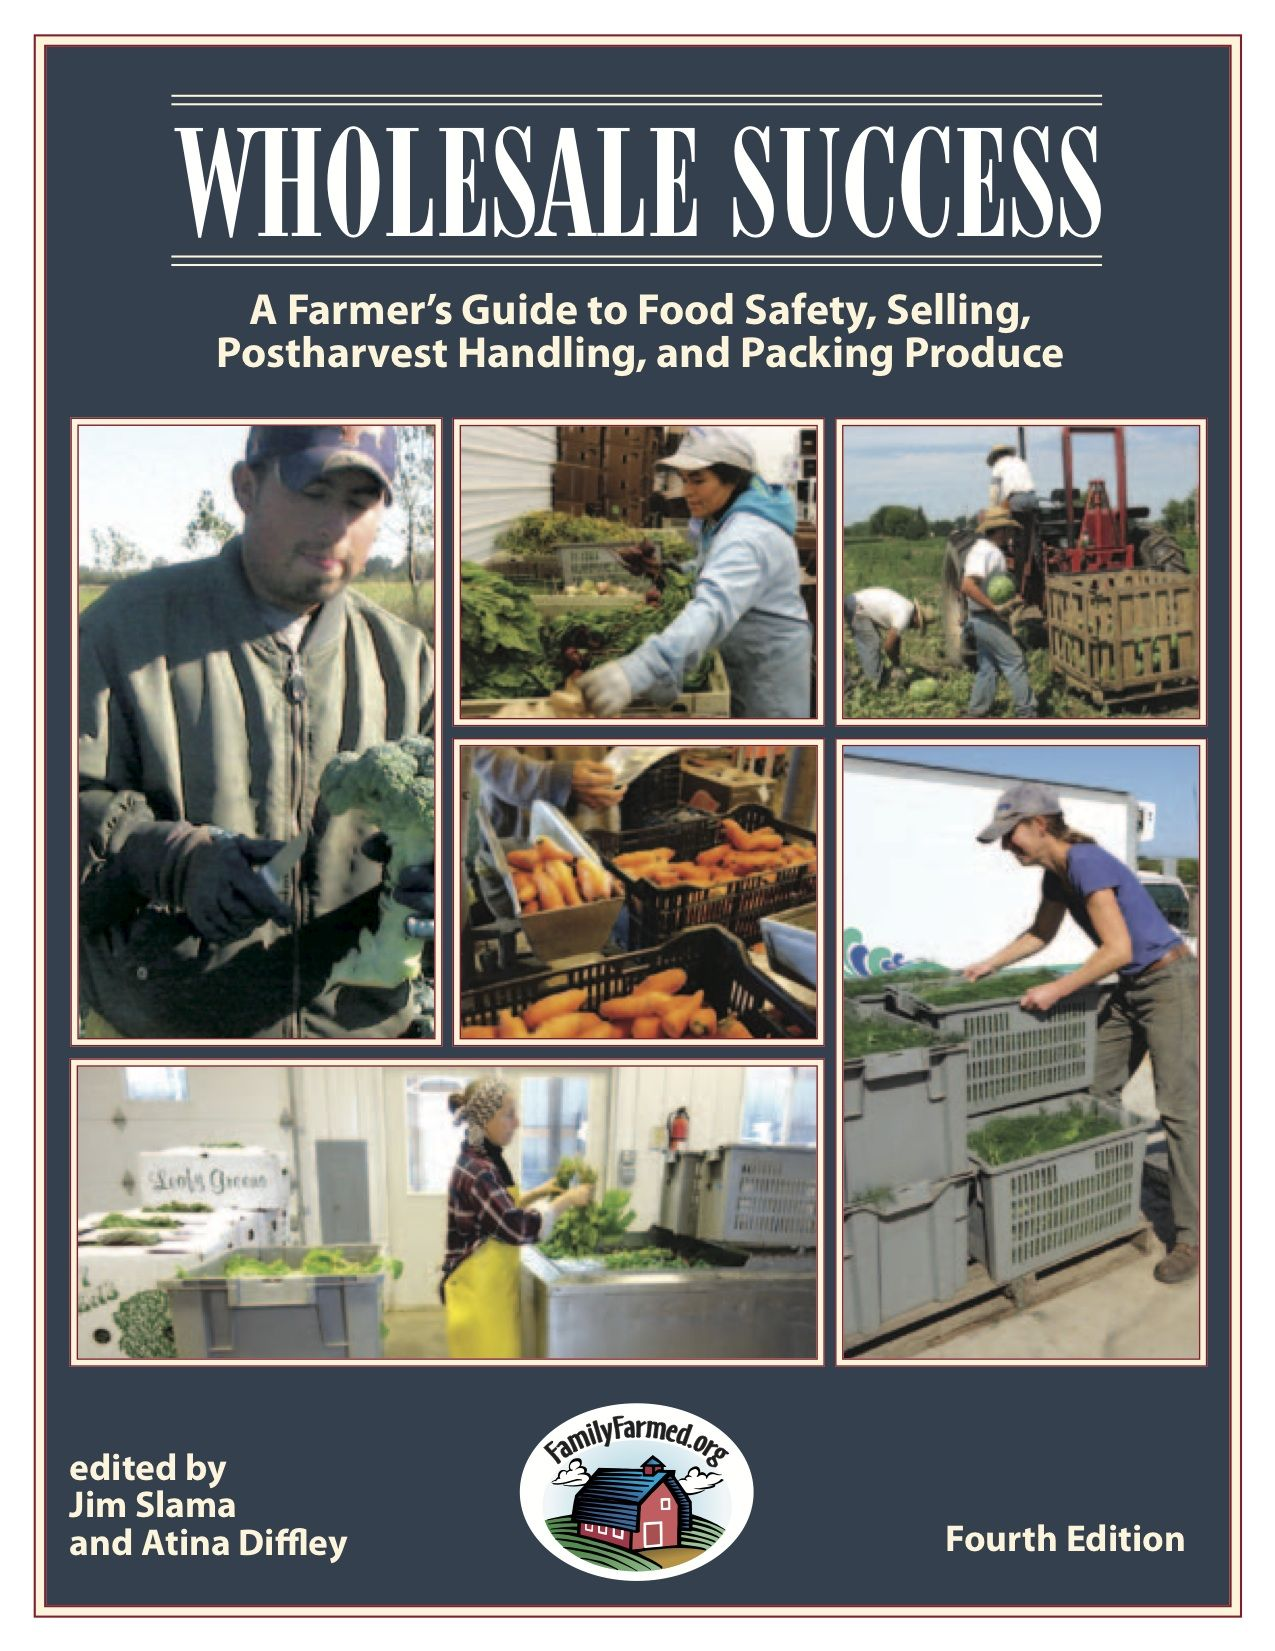 Home Aquaponics Systems For Sale Manual Guide